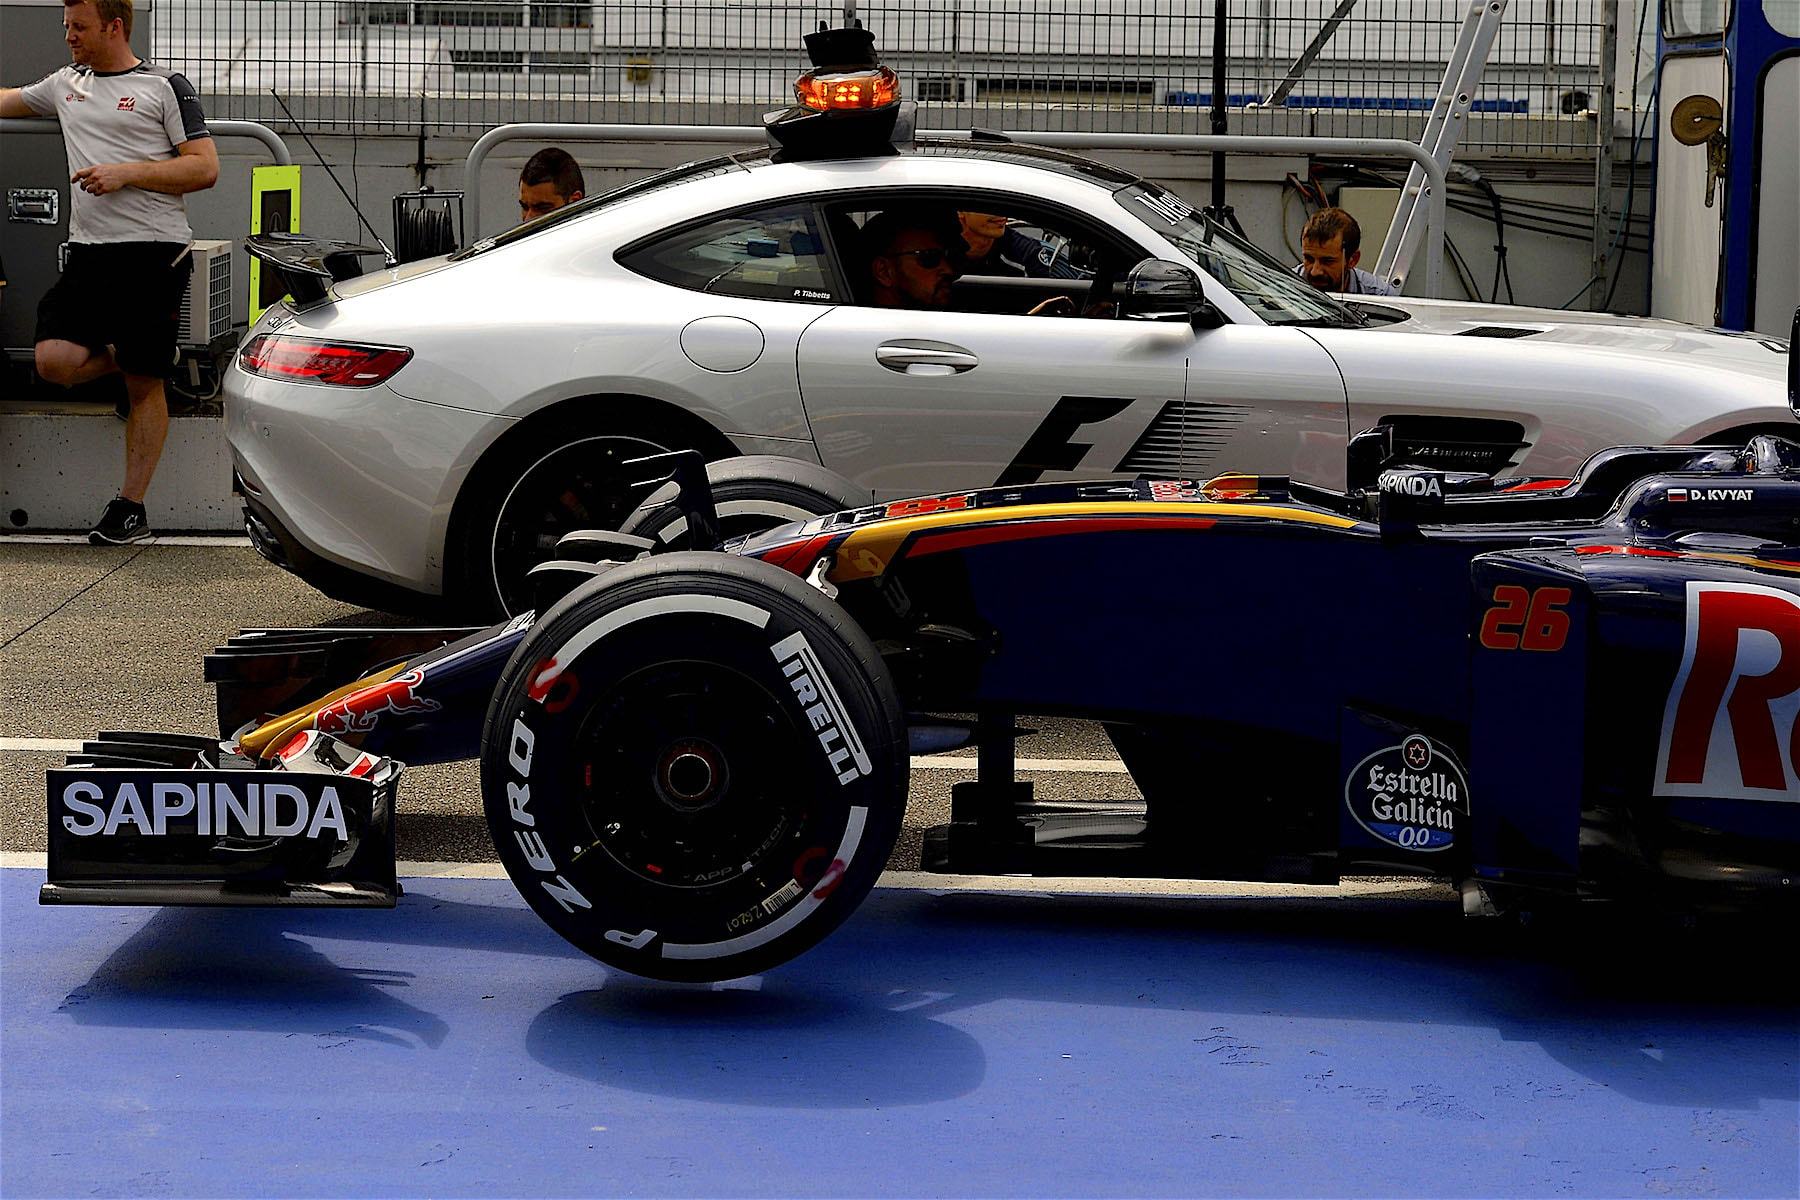 Salracing - A Toro Rosso and the FIA Safety car